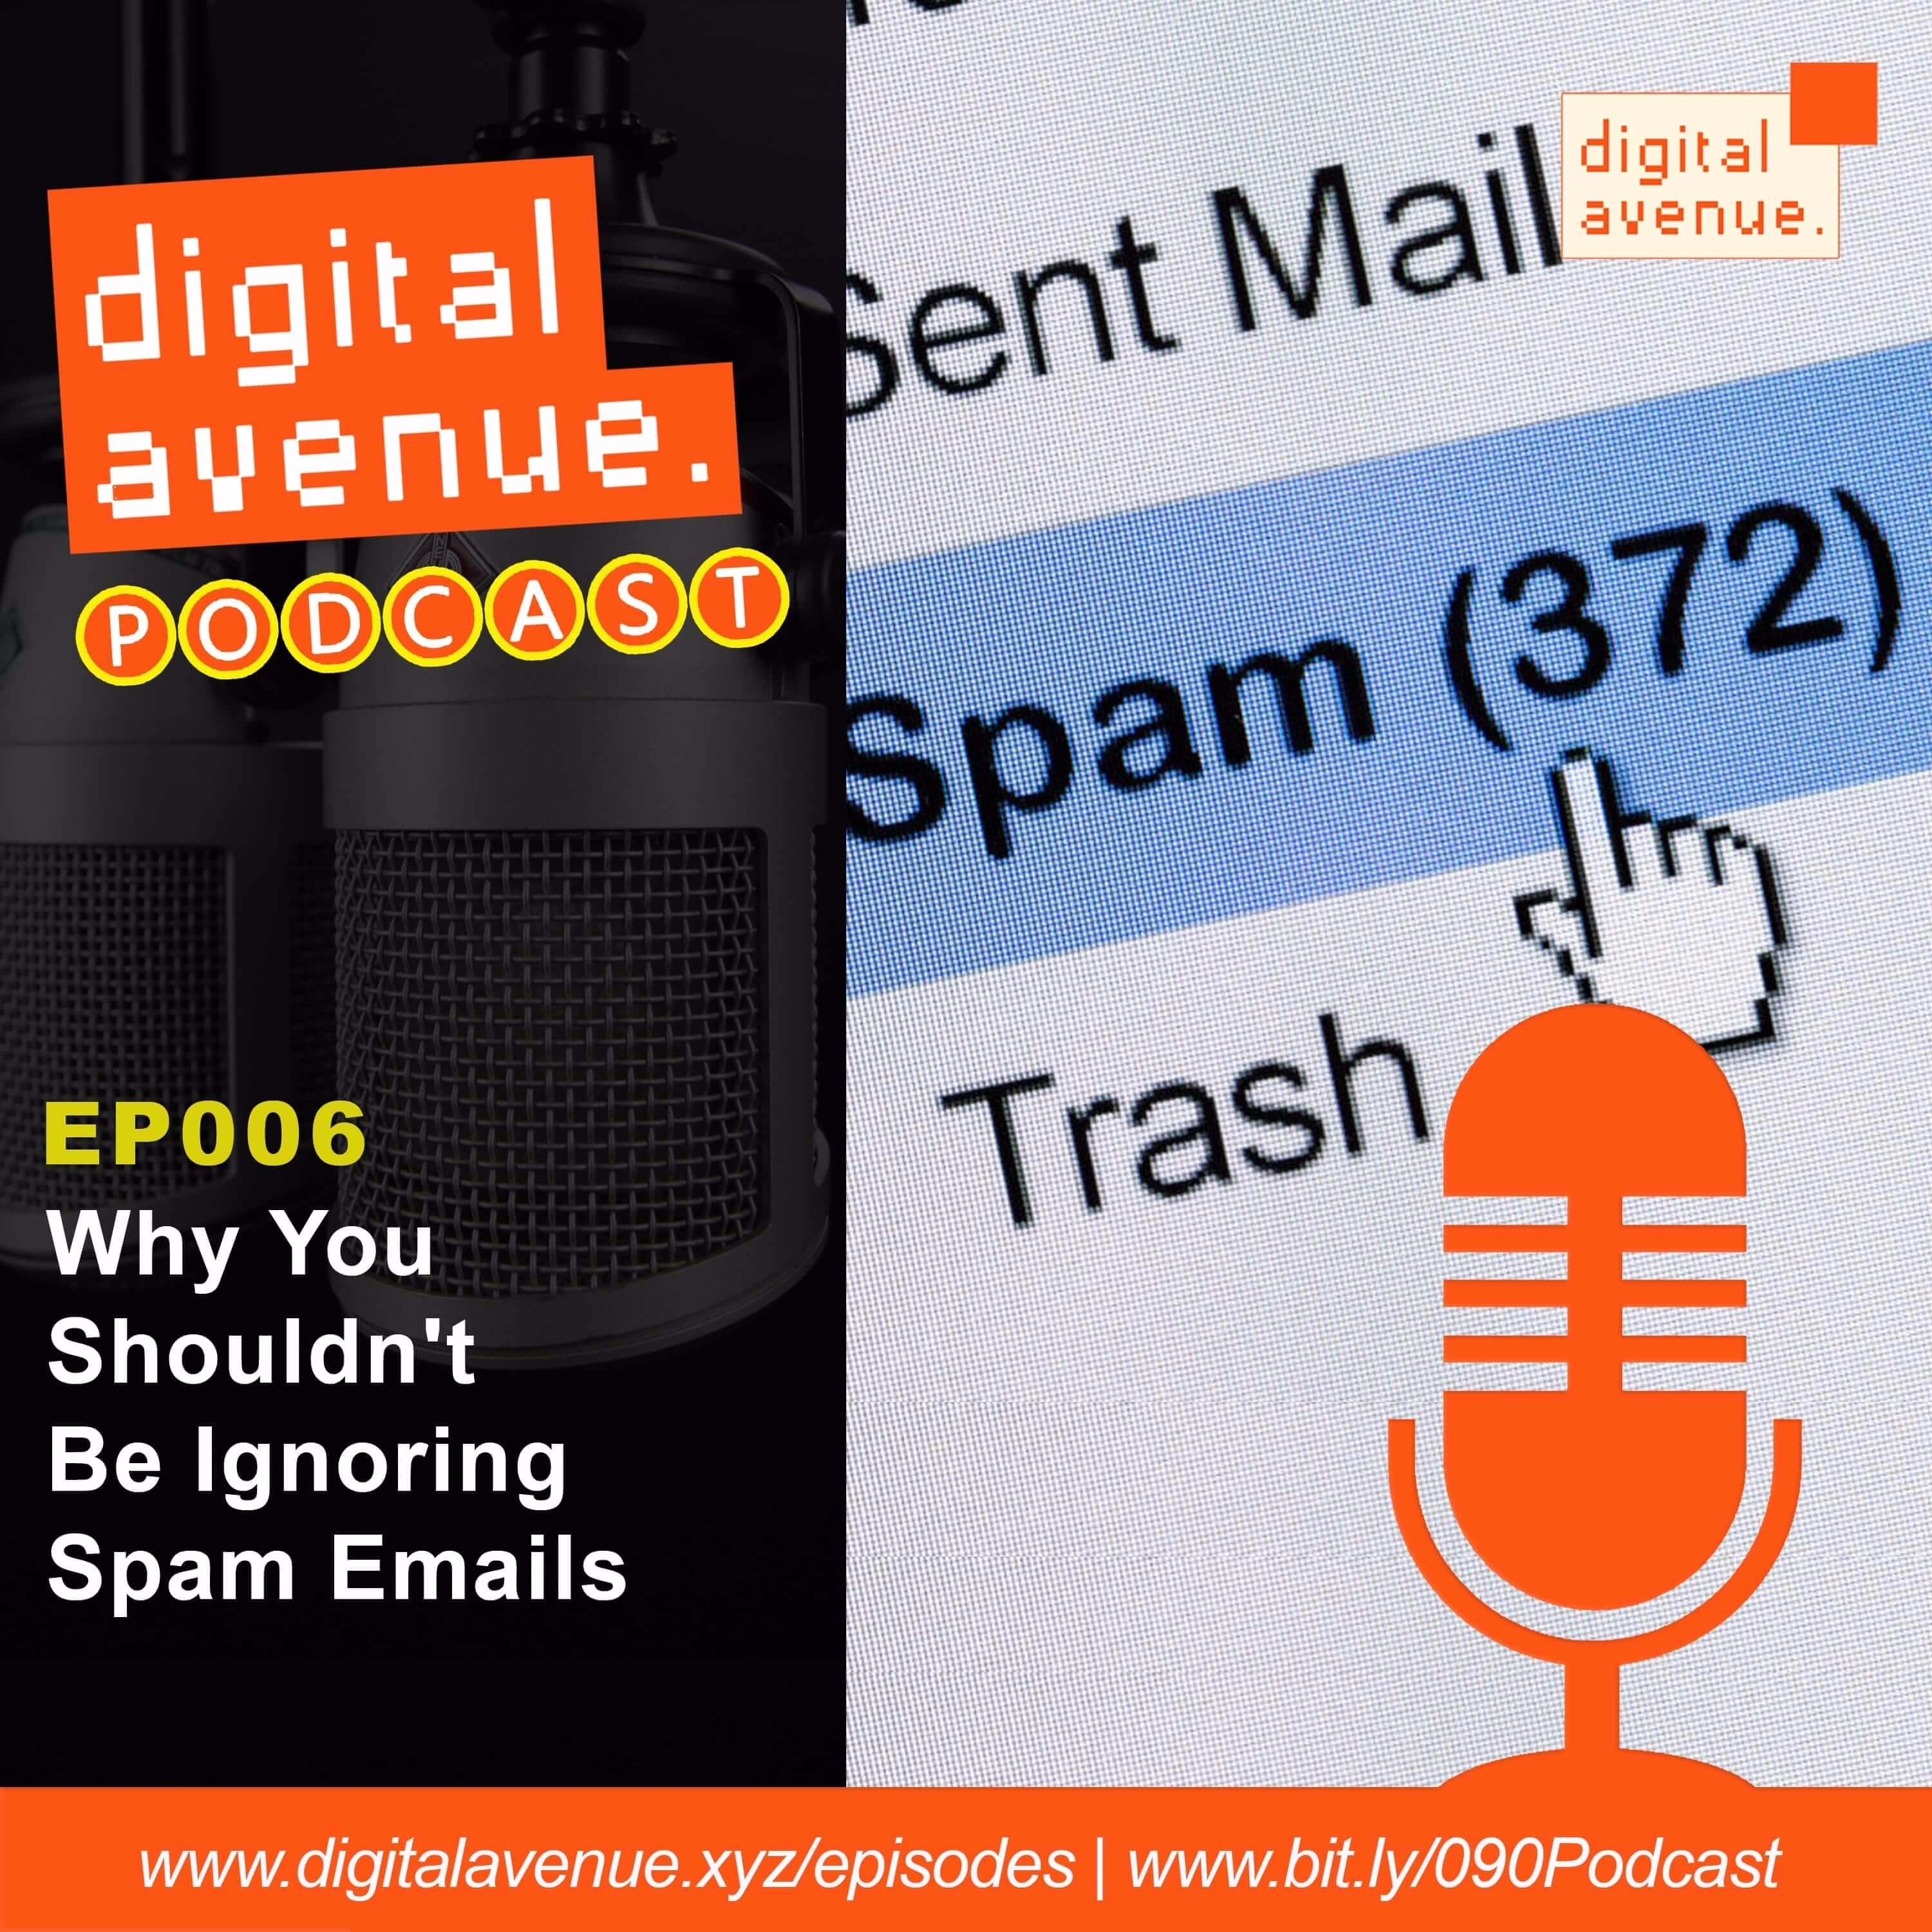 Why You Shouldn't Just Ignore or Delete Spam (Scam) Emails